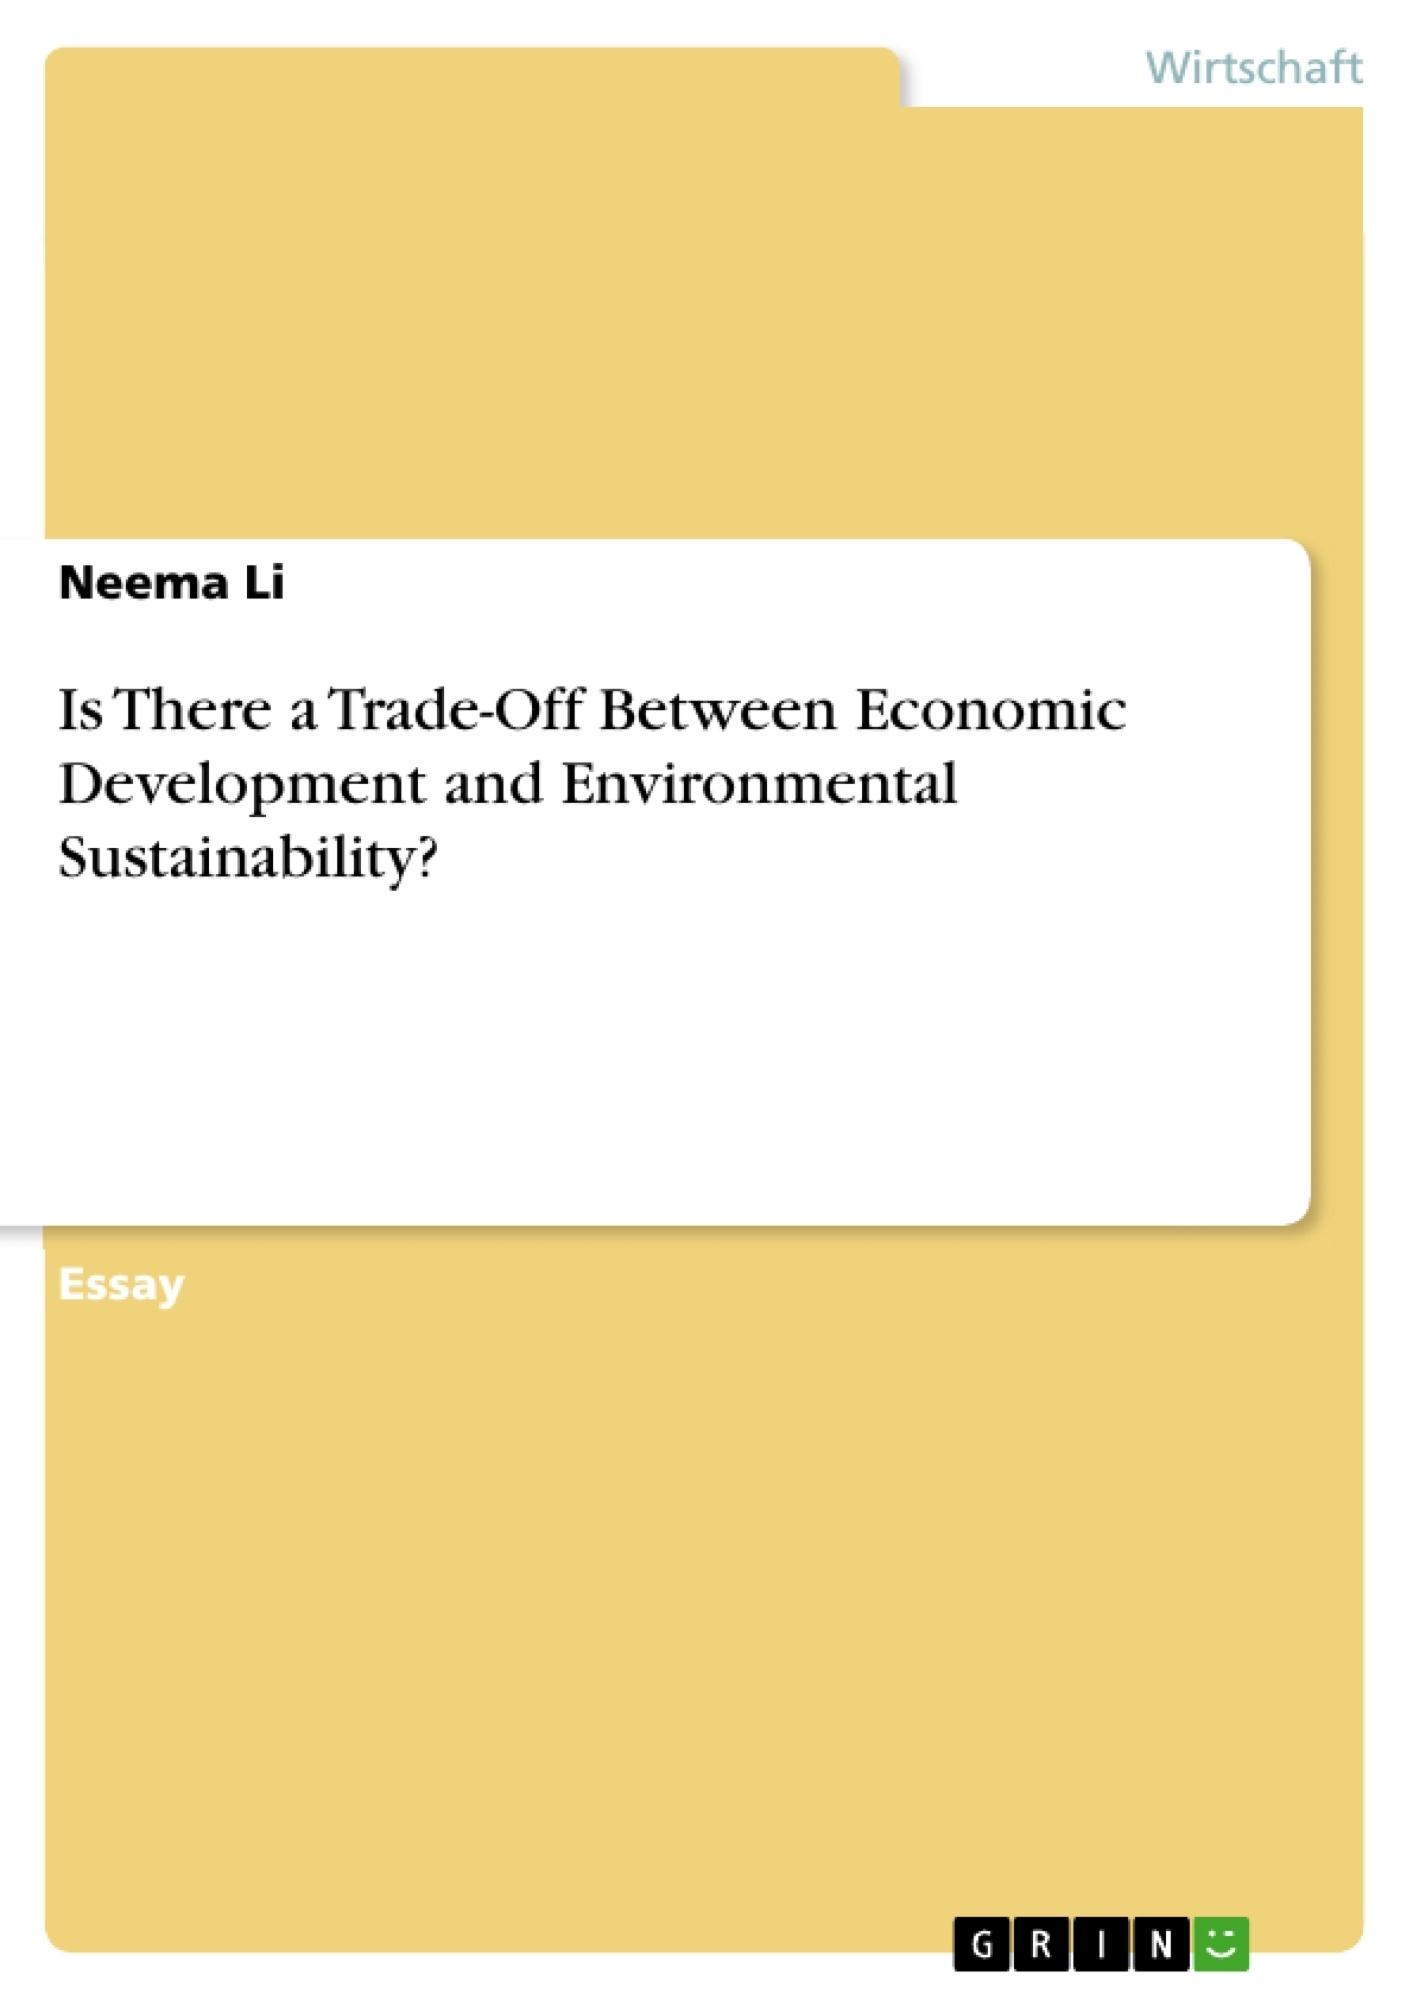 Titel: Is There a Trade-Off Between Economic Development and Environmental Sustainability?